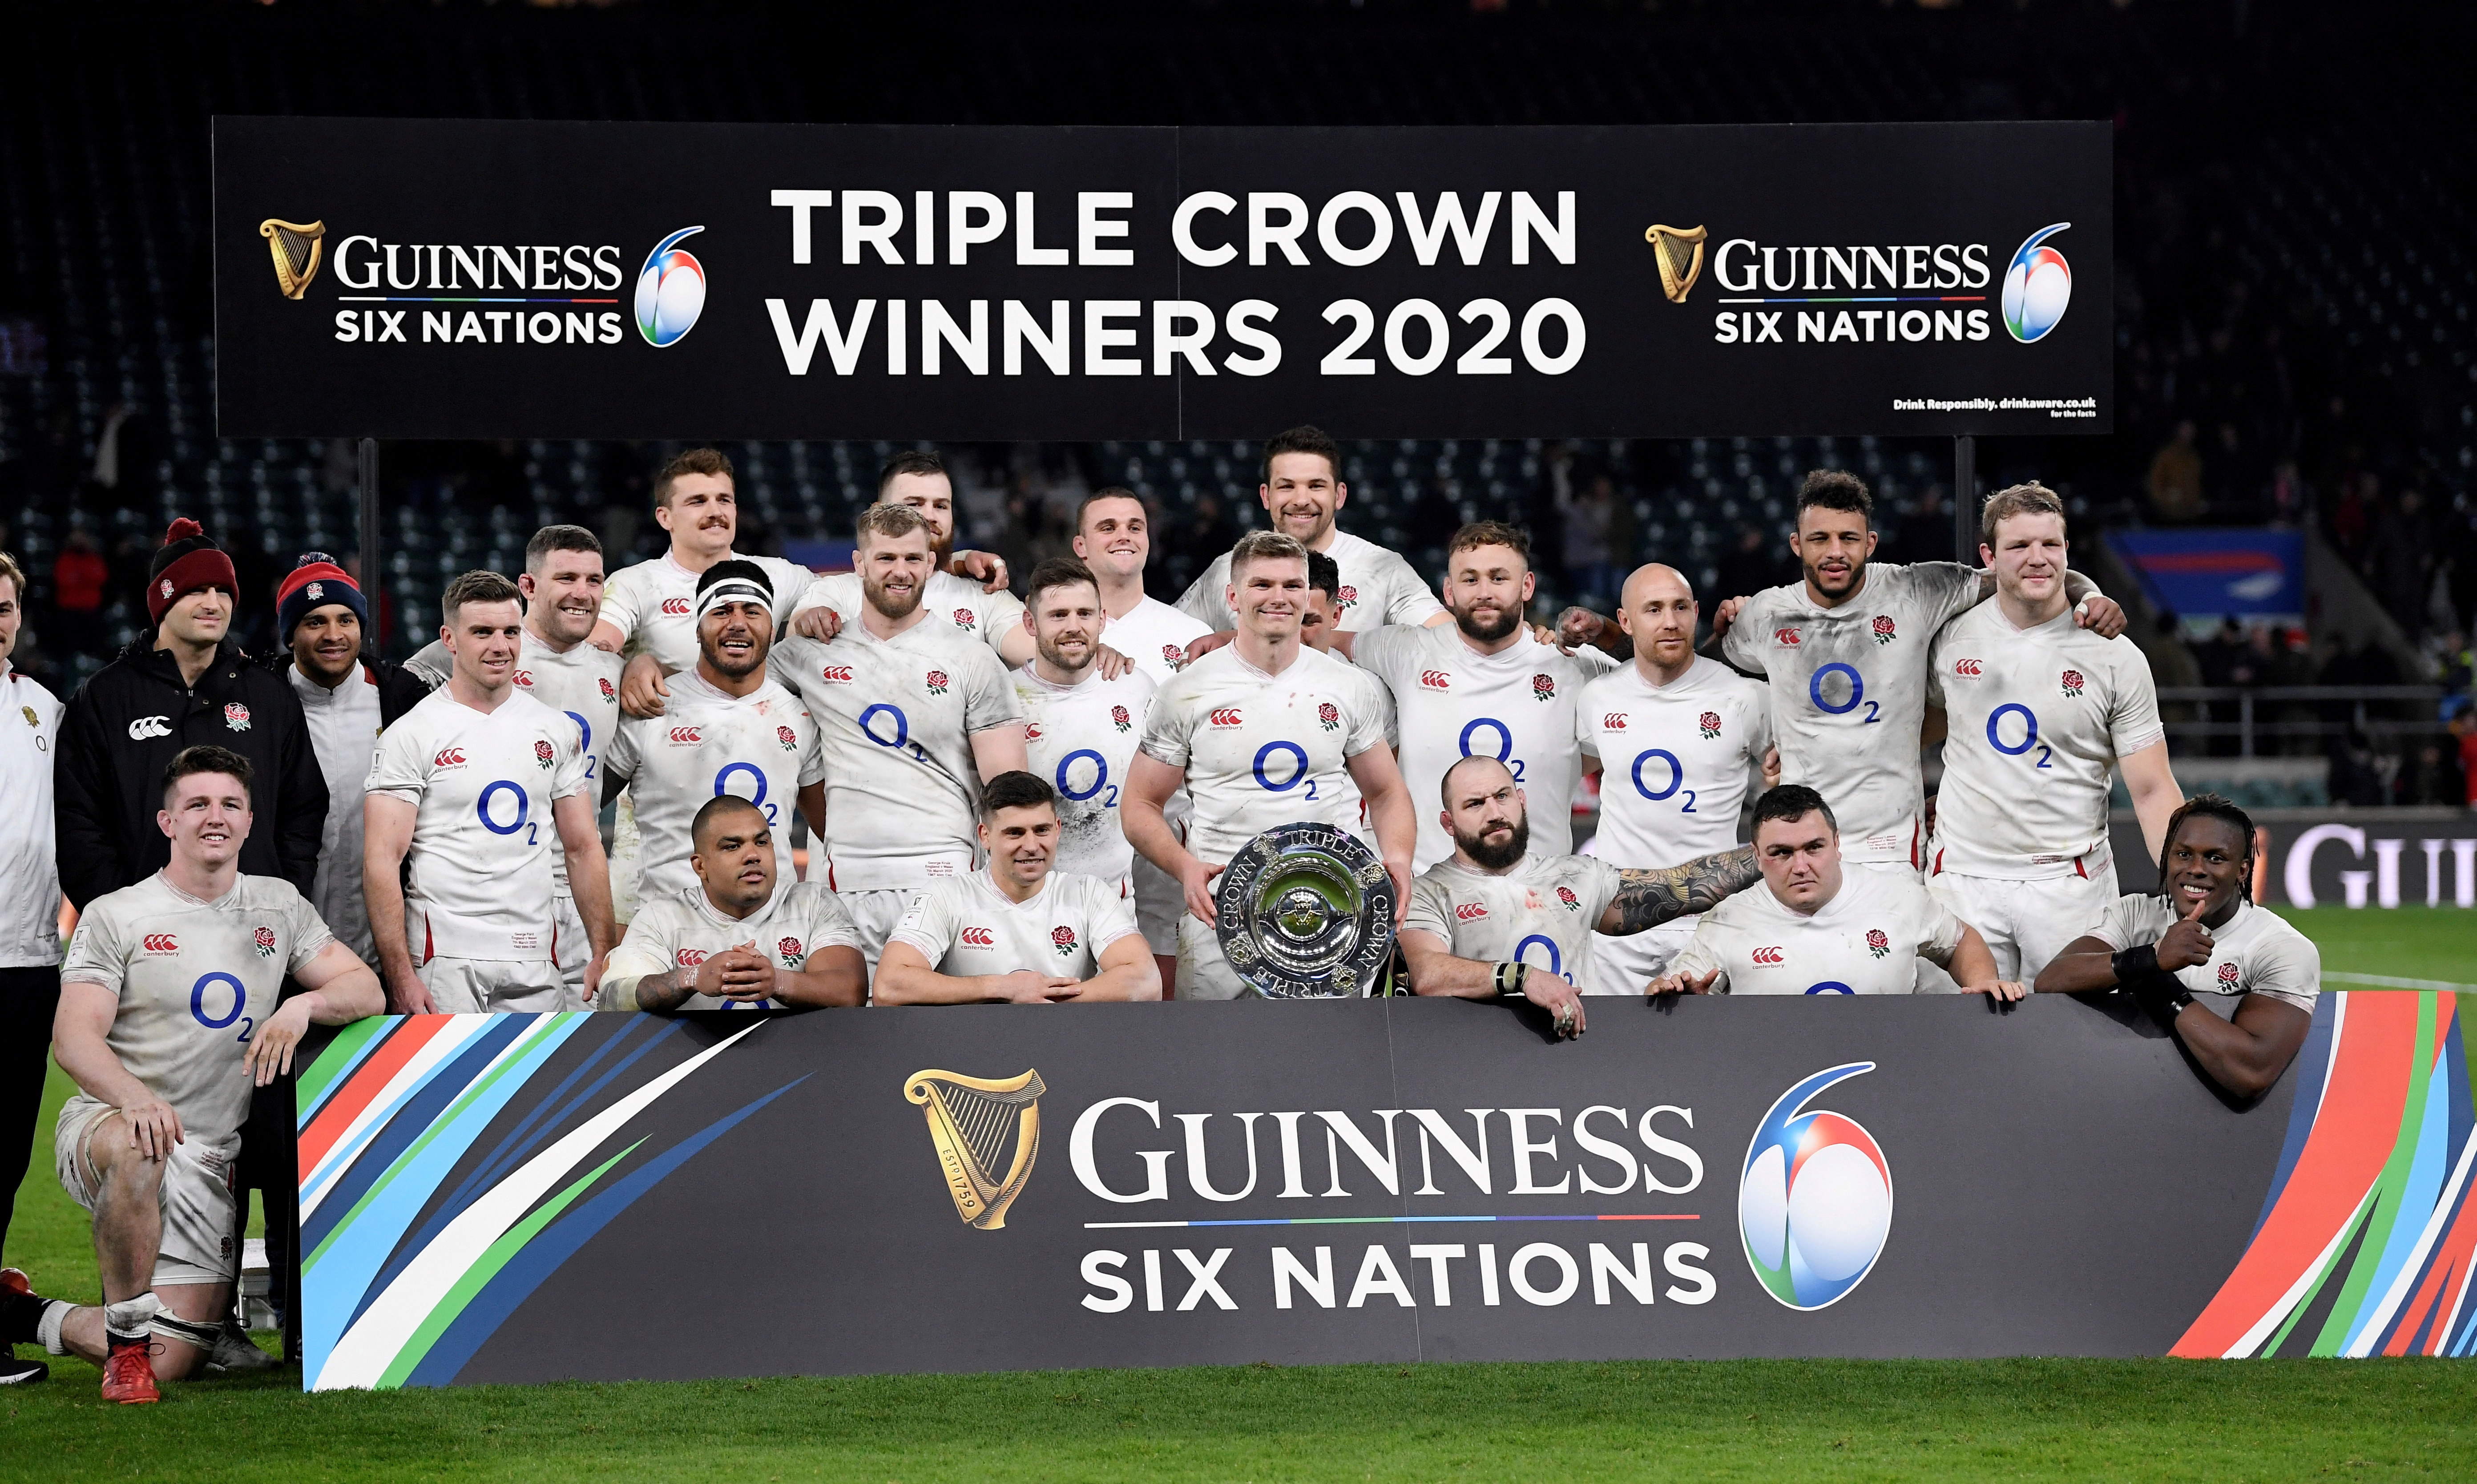 England celebrated the Triple Crown in 2020